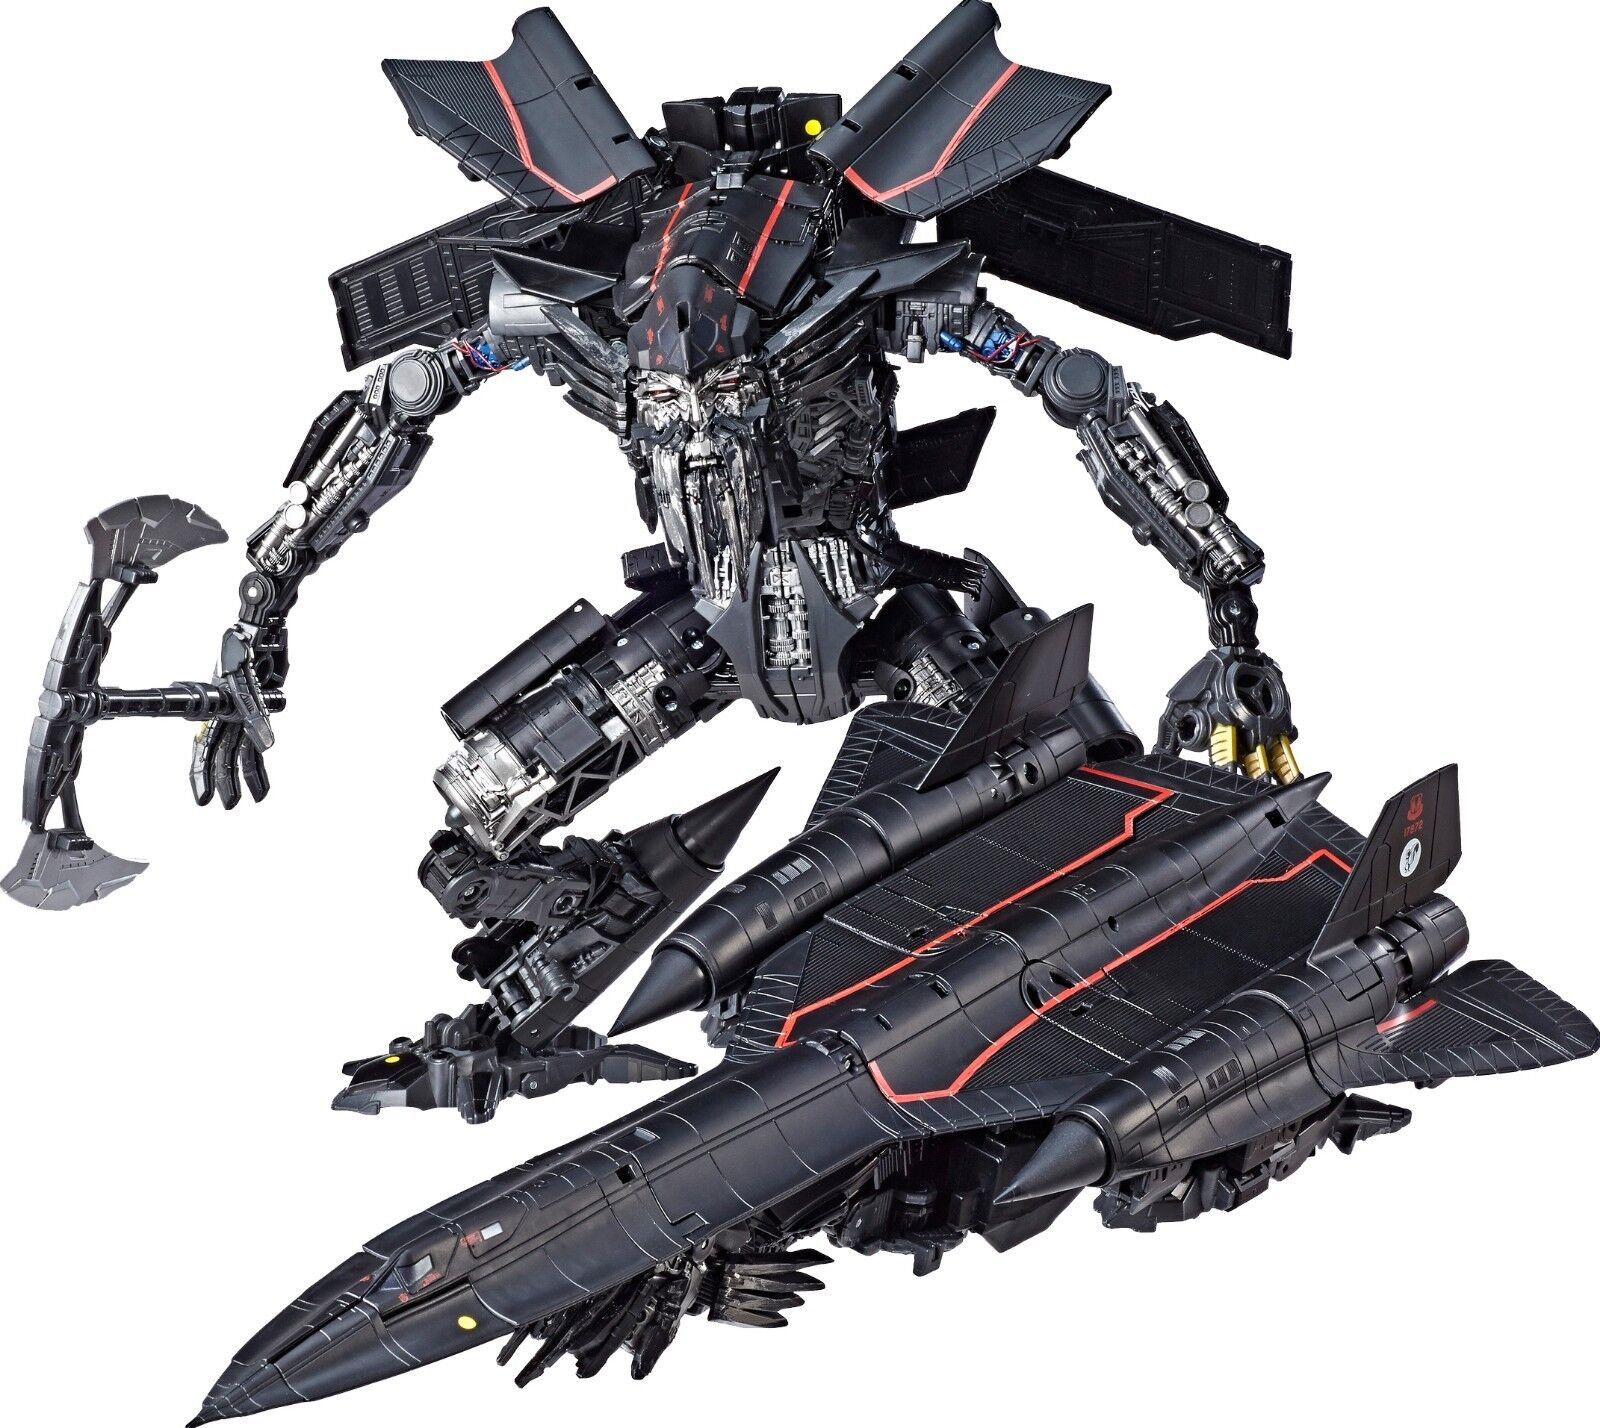 Die generationen filmstudio serie leader jetfire tf2 action - figur